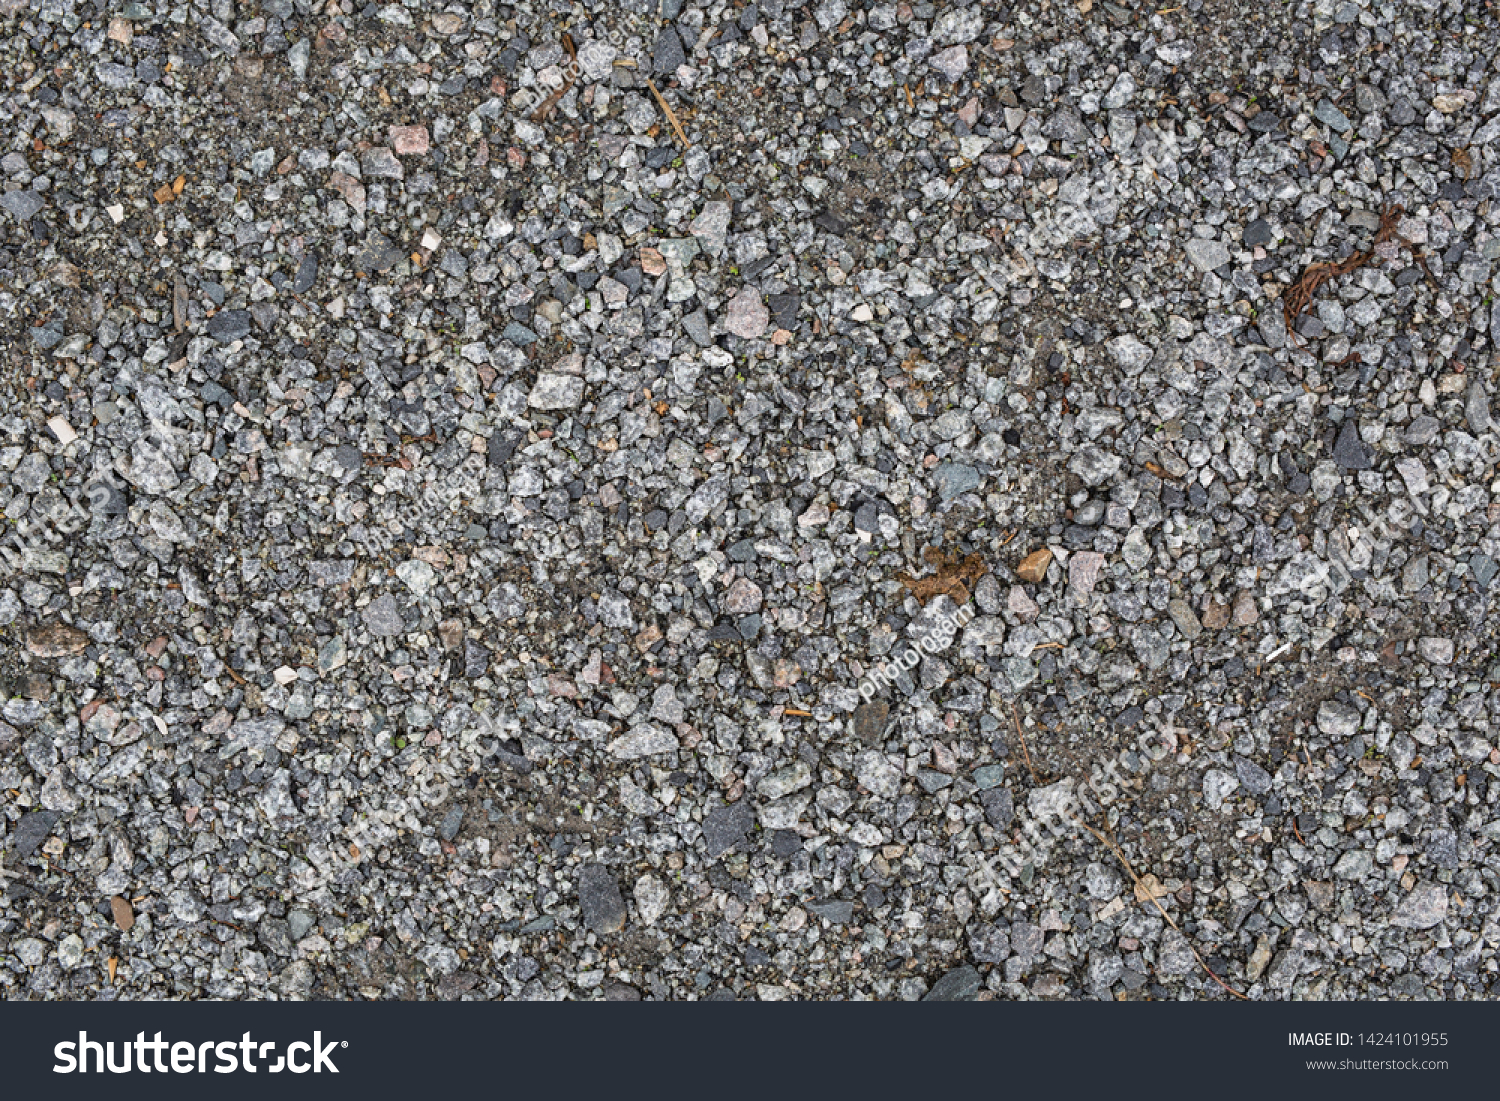 grey white and grey gravel and rock texture high resolution #1424101955